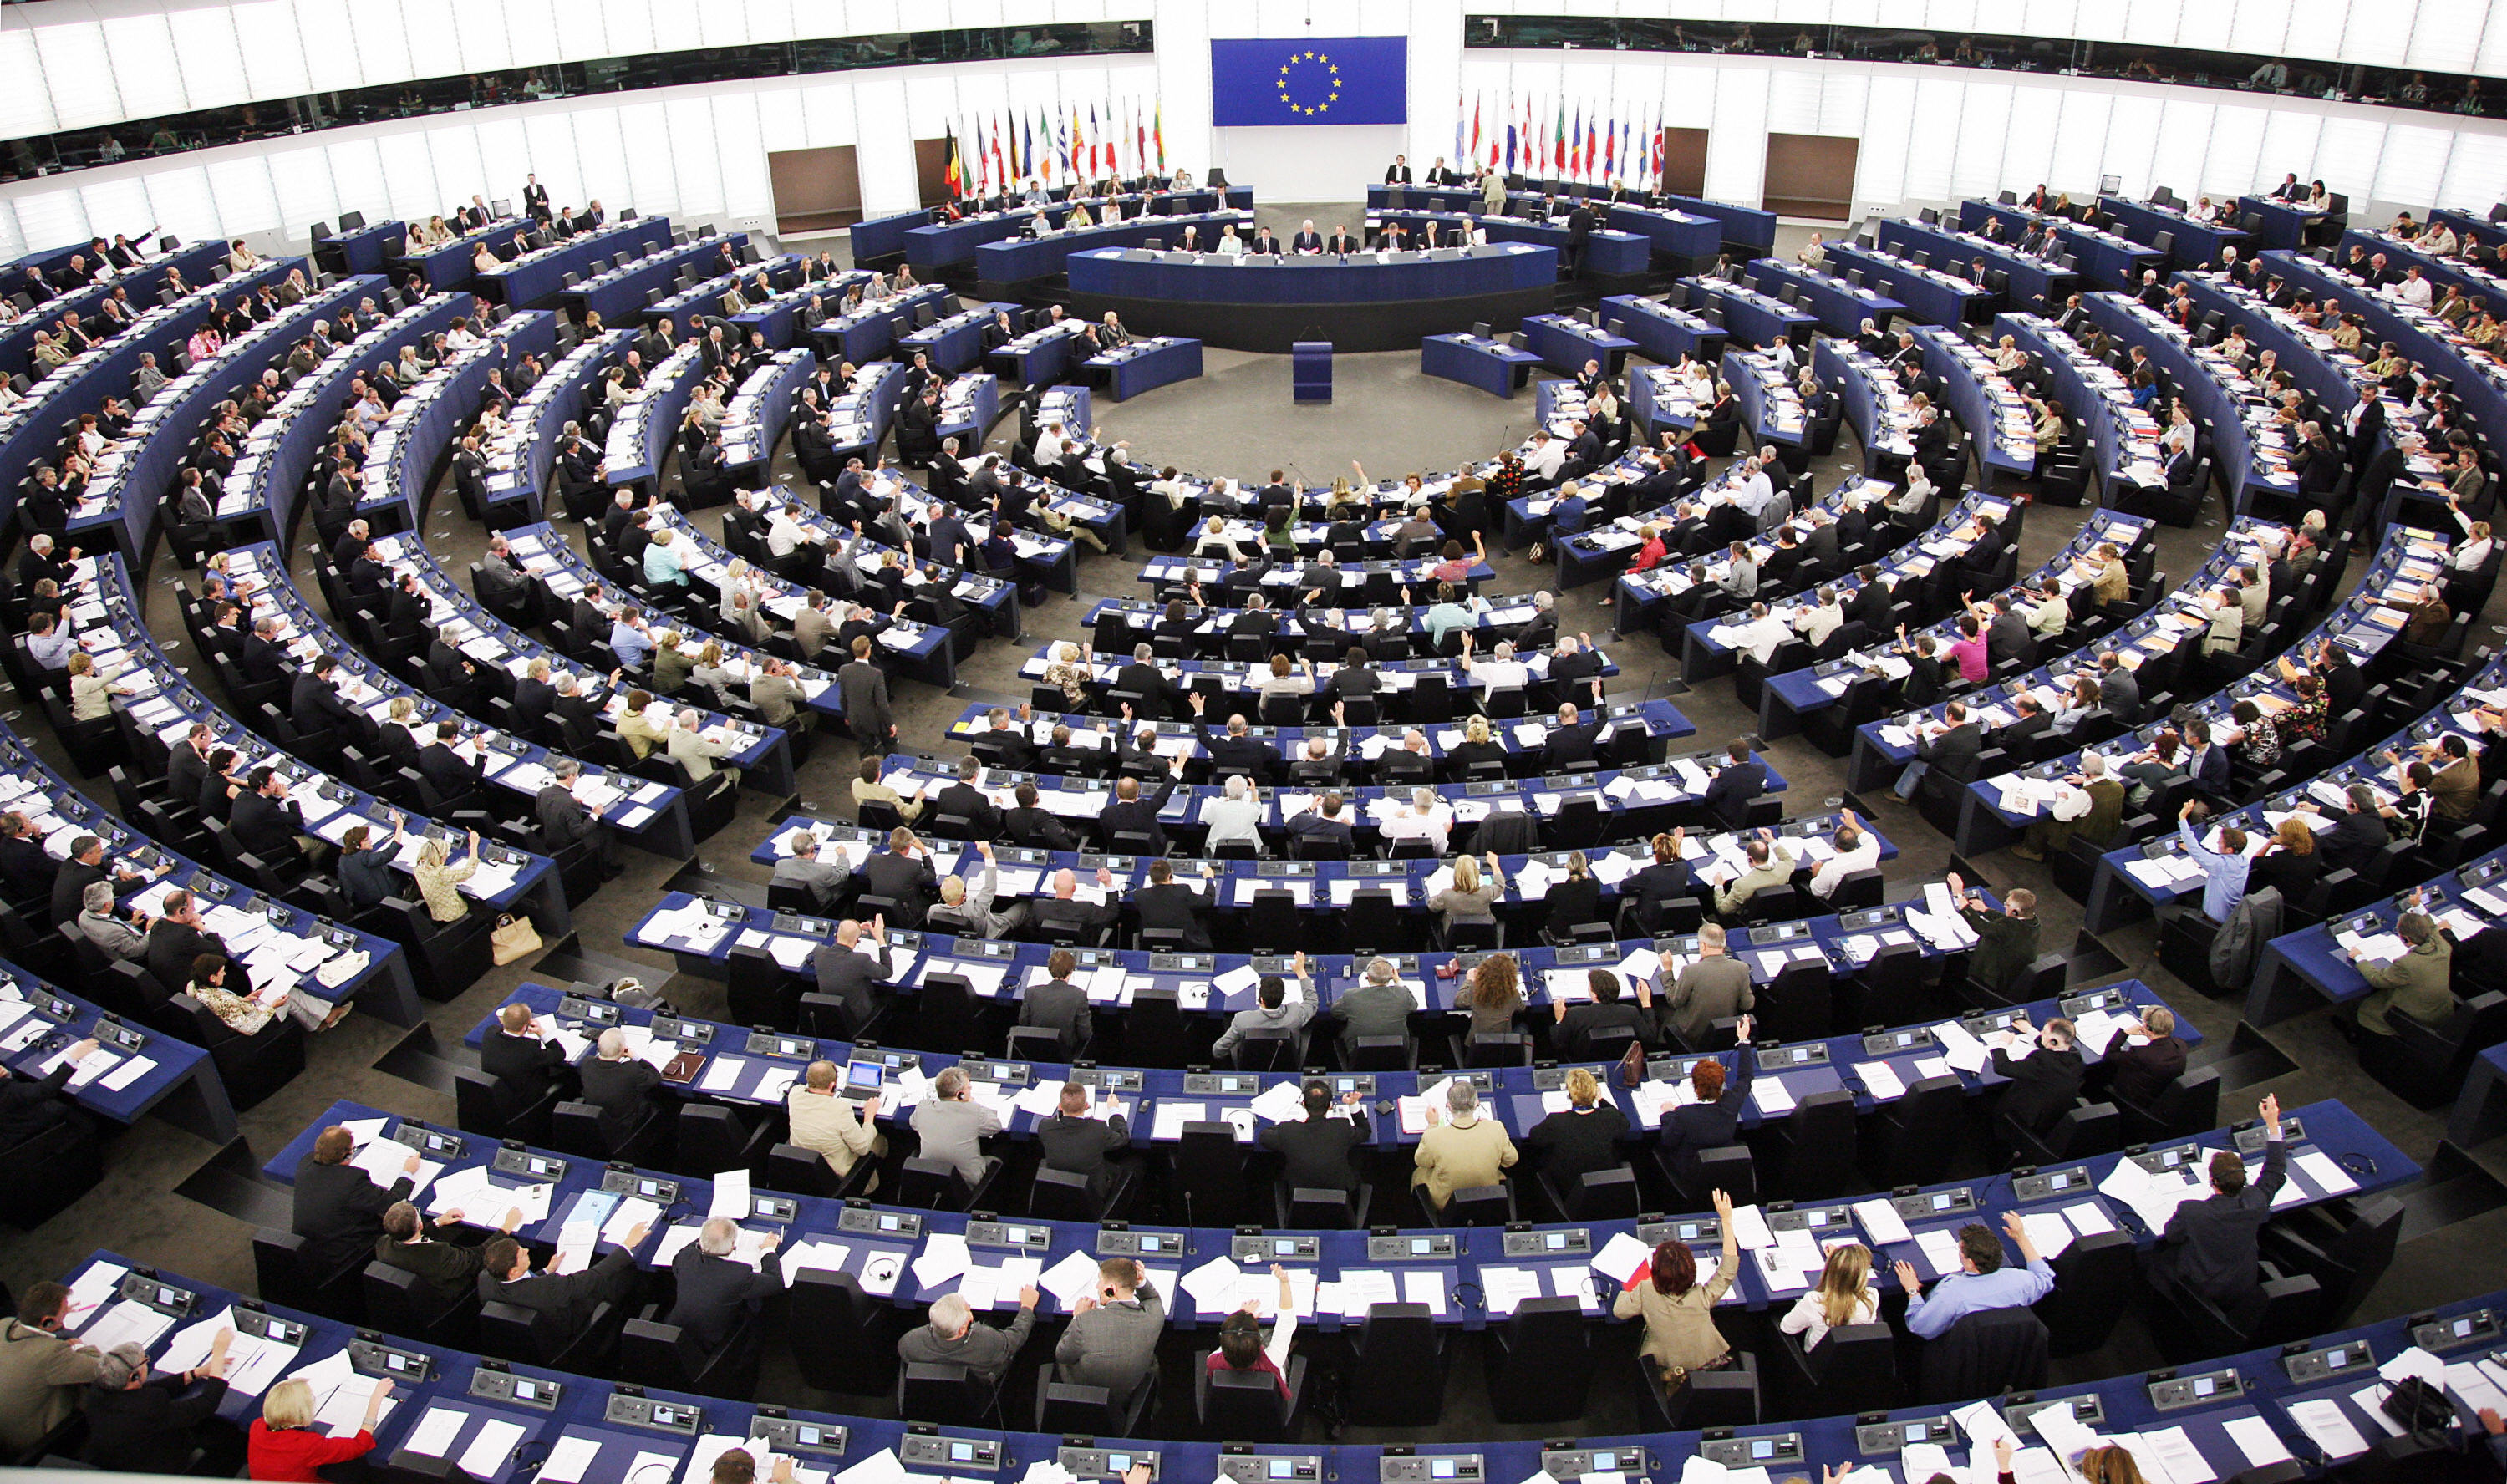 The EU Parliament said Johnson's proposals do not address the main issues.